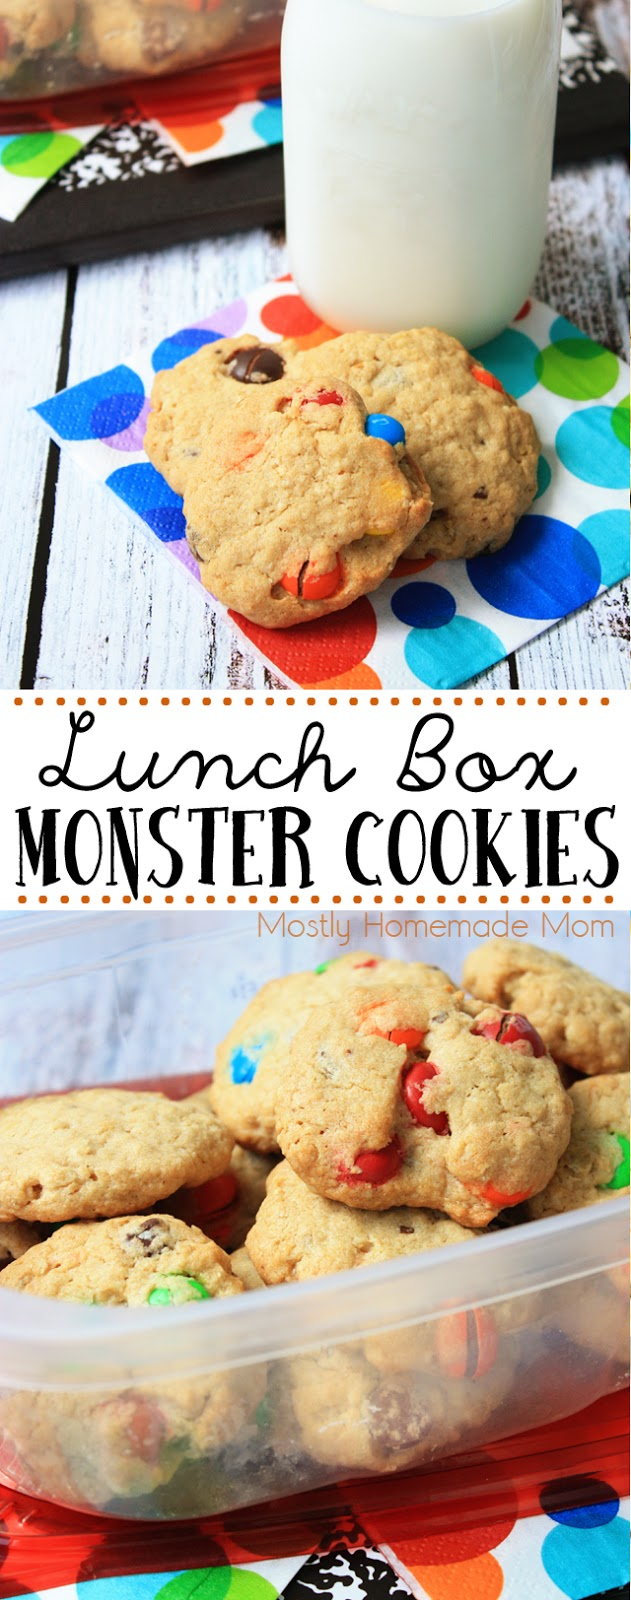 Lunch Box Monster Cookies Recipe